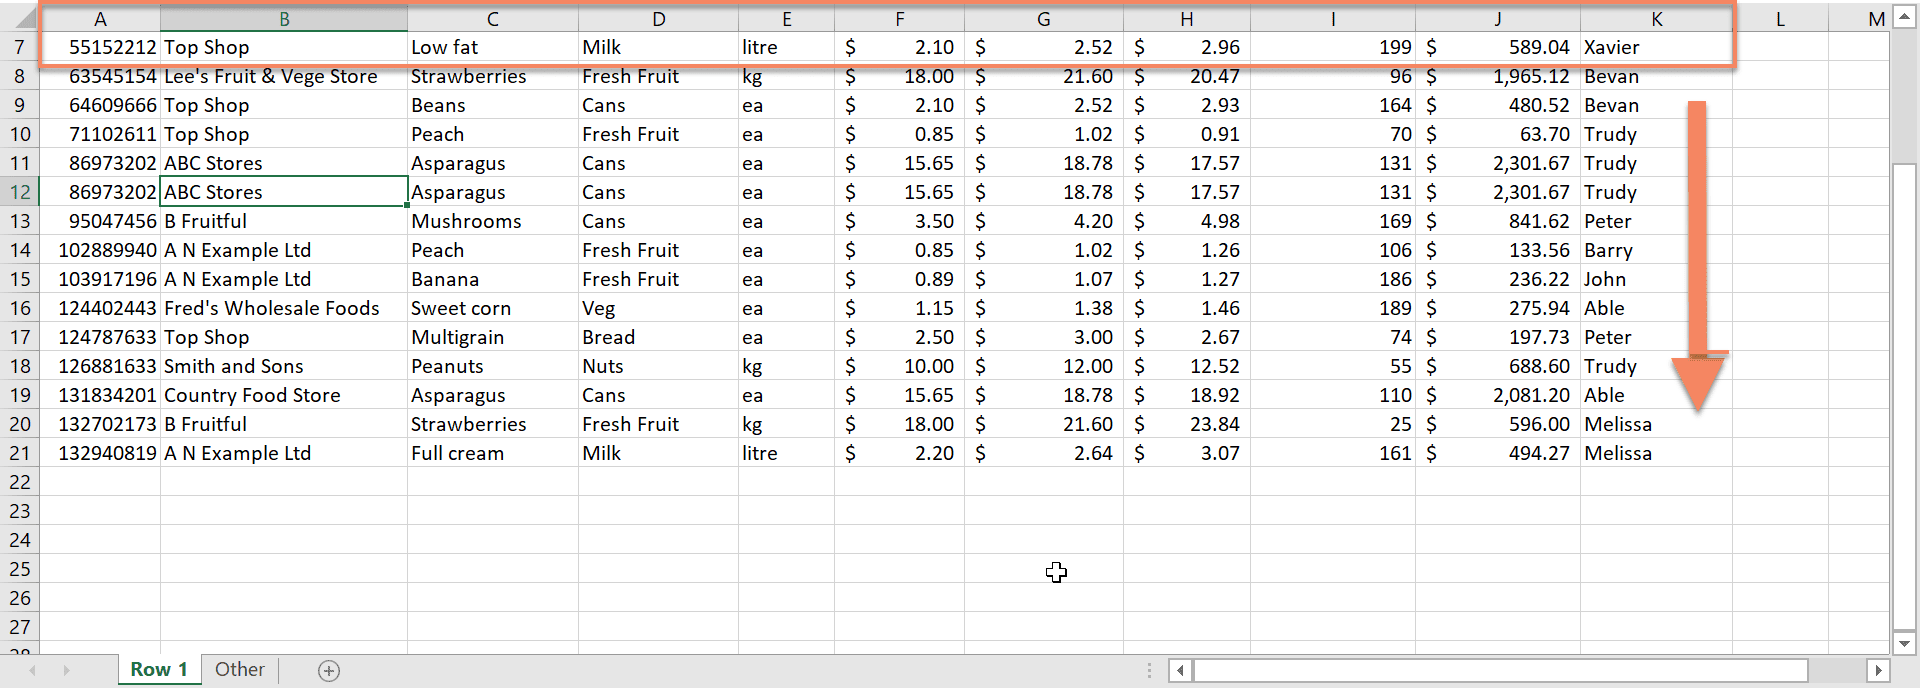 How to freeze a row in Excel 2